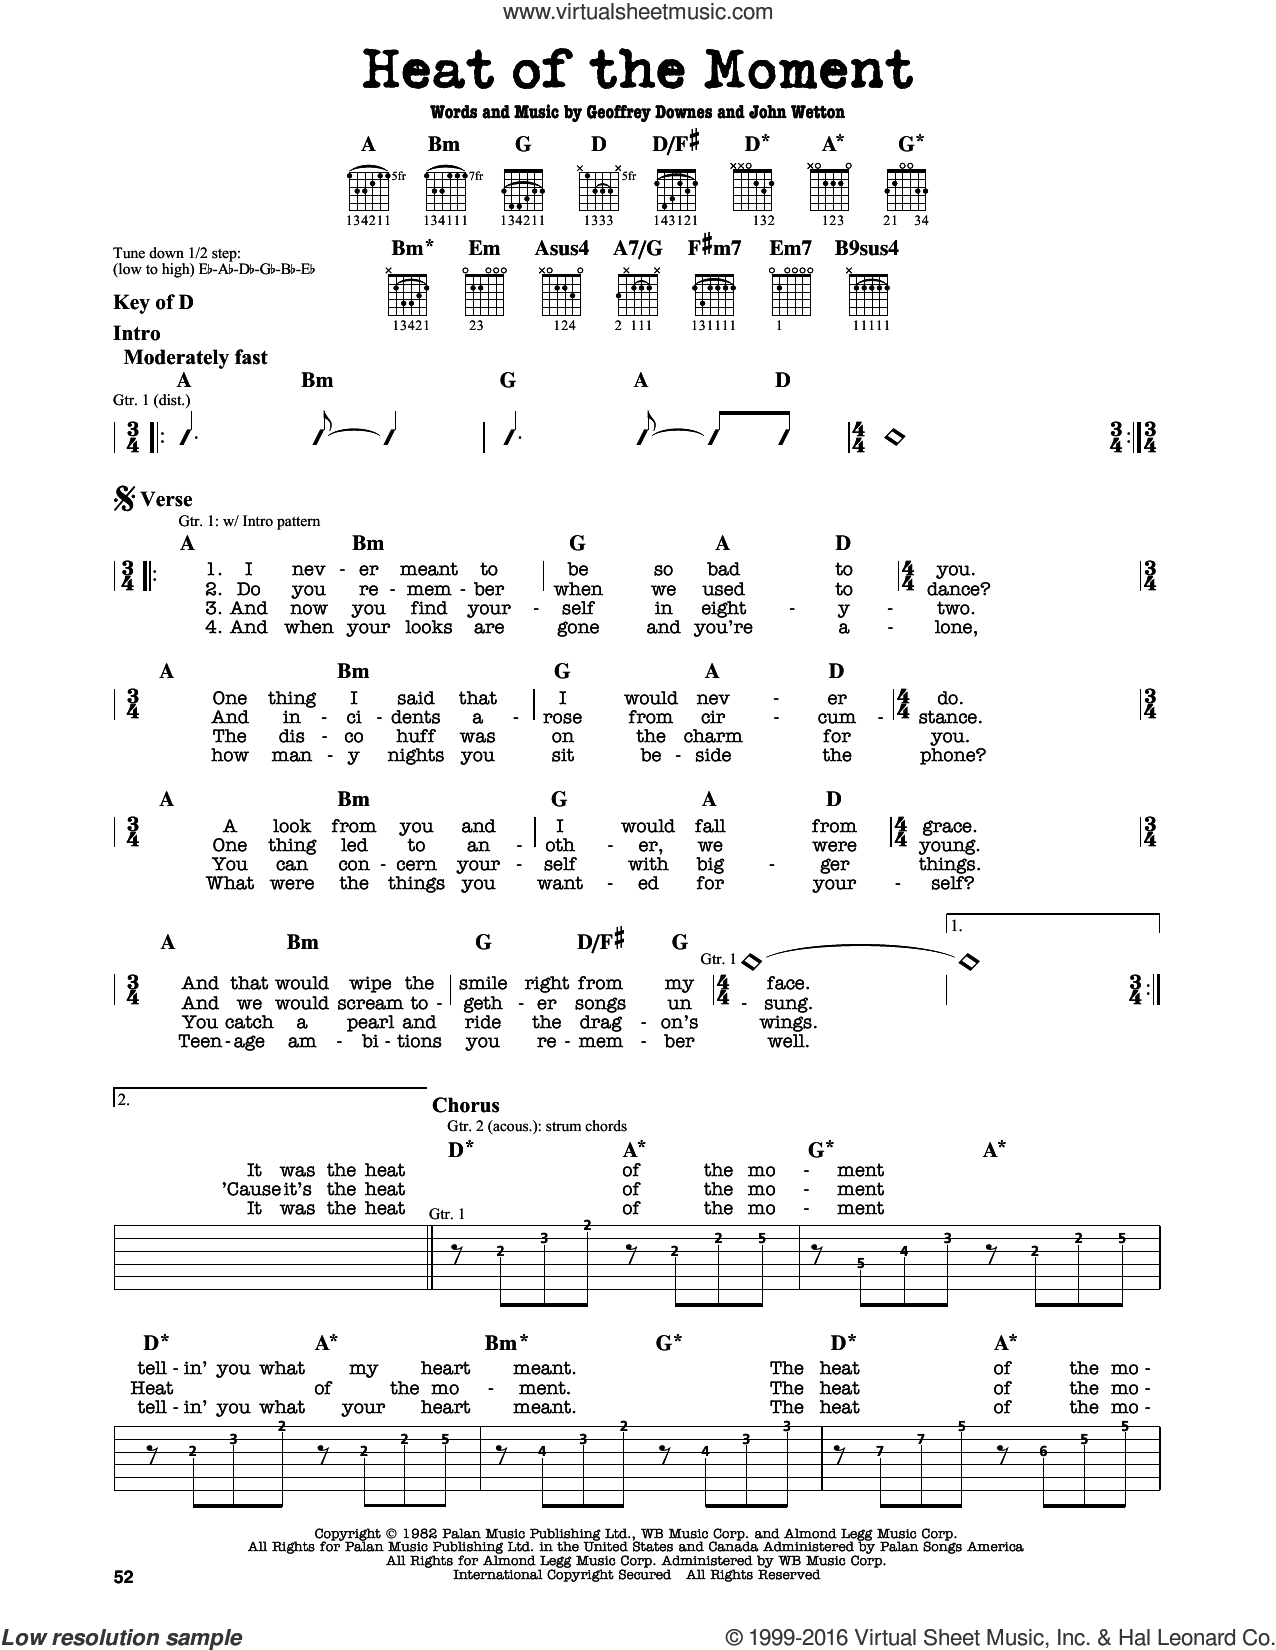 Heat Of The Moment sheet music for guitar solo (lead sheet) by Asia, Geoff Downes and John Wetton, intermediate guitar (lead sheet). Score Image Preview.